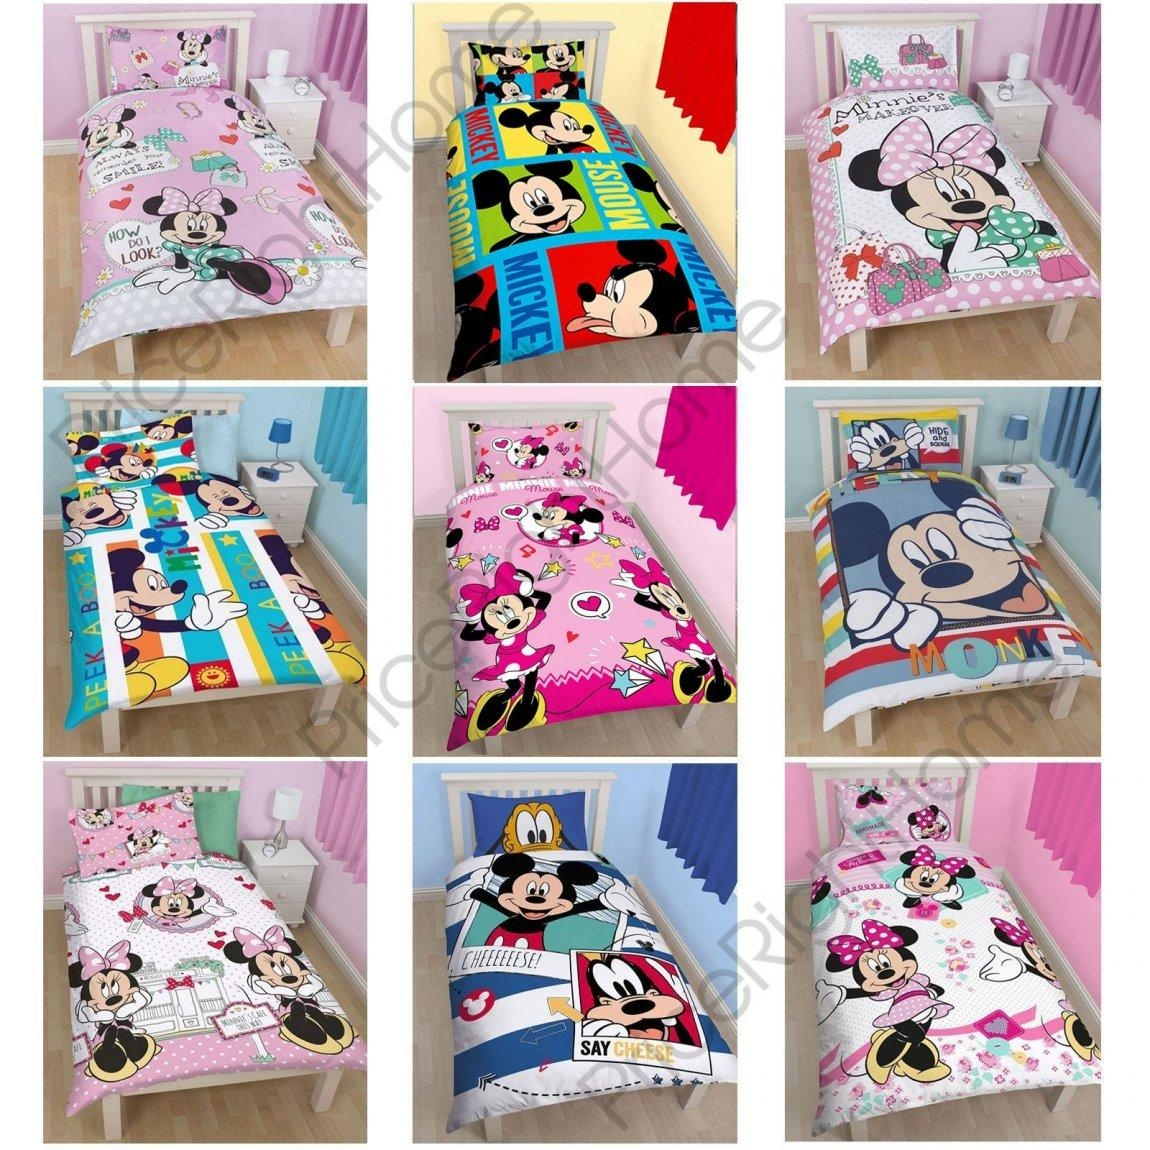 Minnie Mouse Quilt Bedroom Inspired Flannel Sheets Mickey Intended For Burlington Coat Factory Wall Art (View 14 of 20)